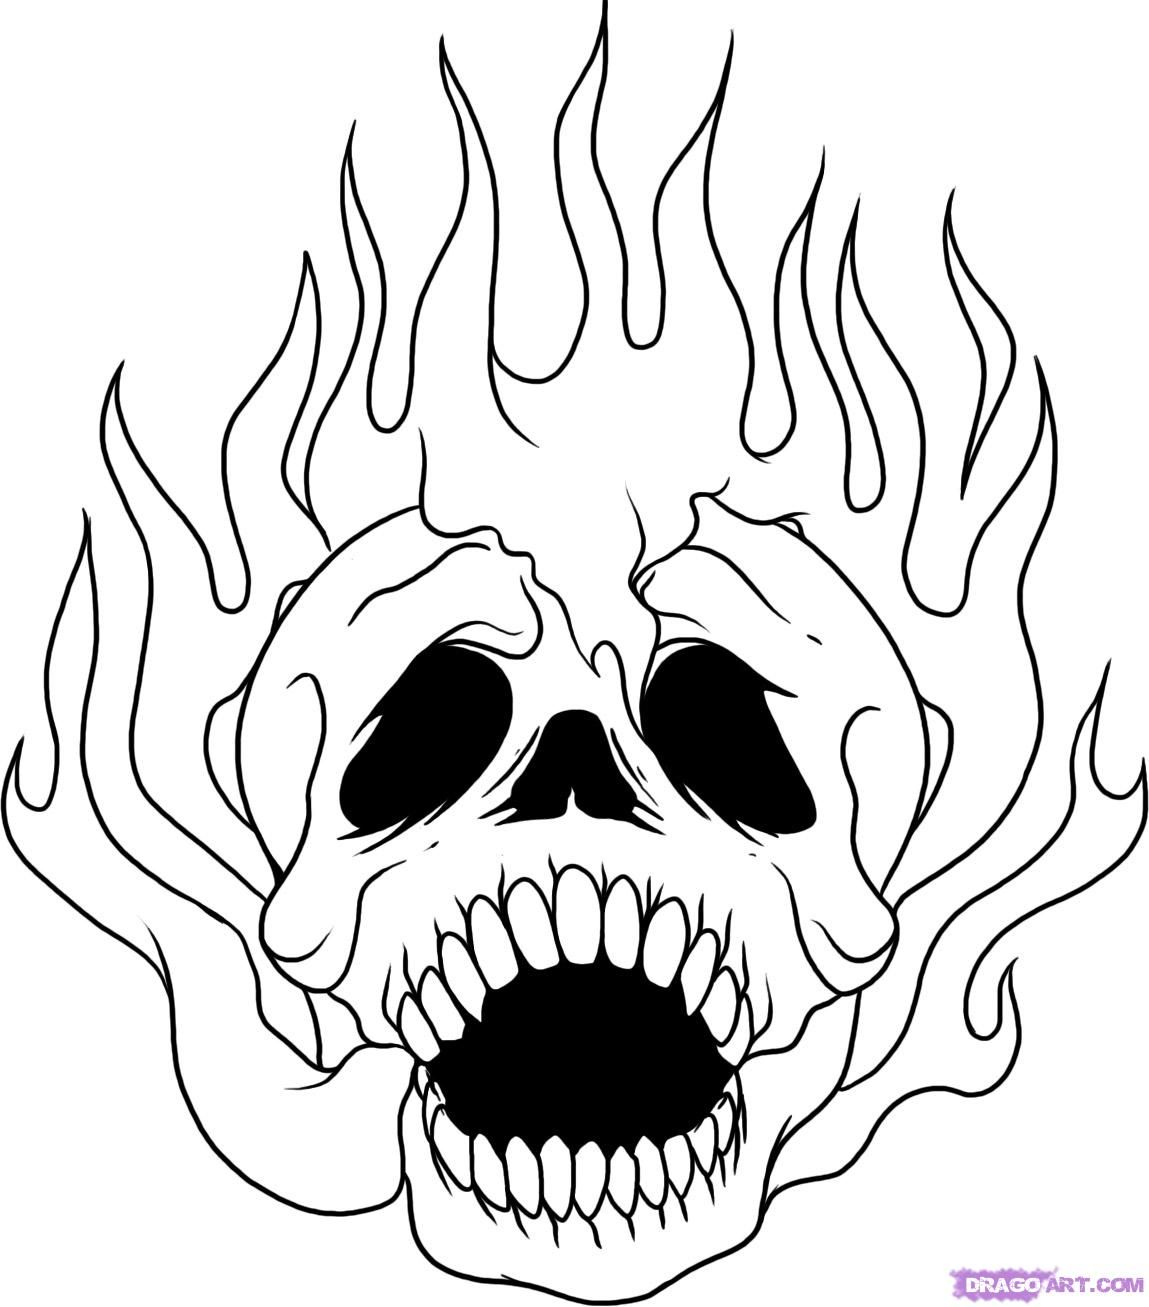 4153630 Fire Coloring Pages Roses Jpg 1149 1307 Skull Coloring Pages Cool Coloring Pages Halloween Coloring Pages